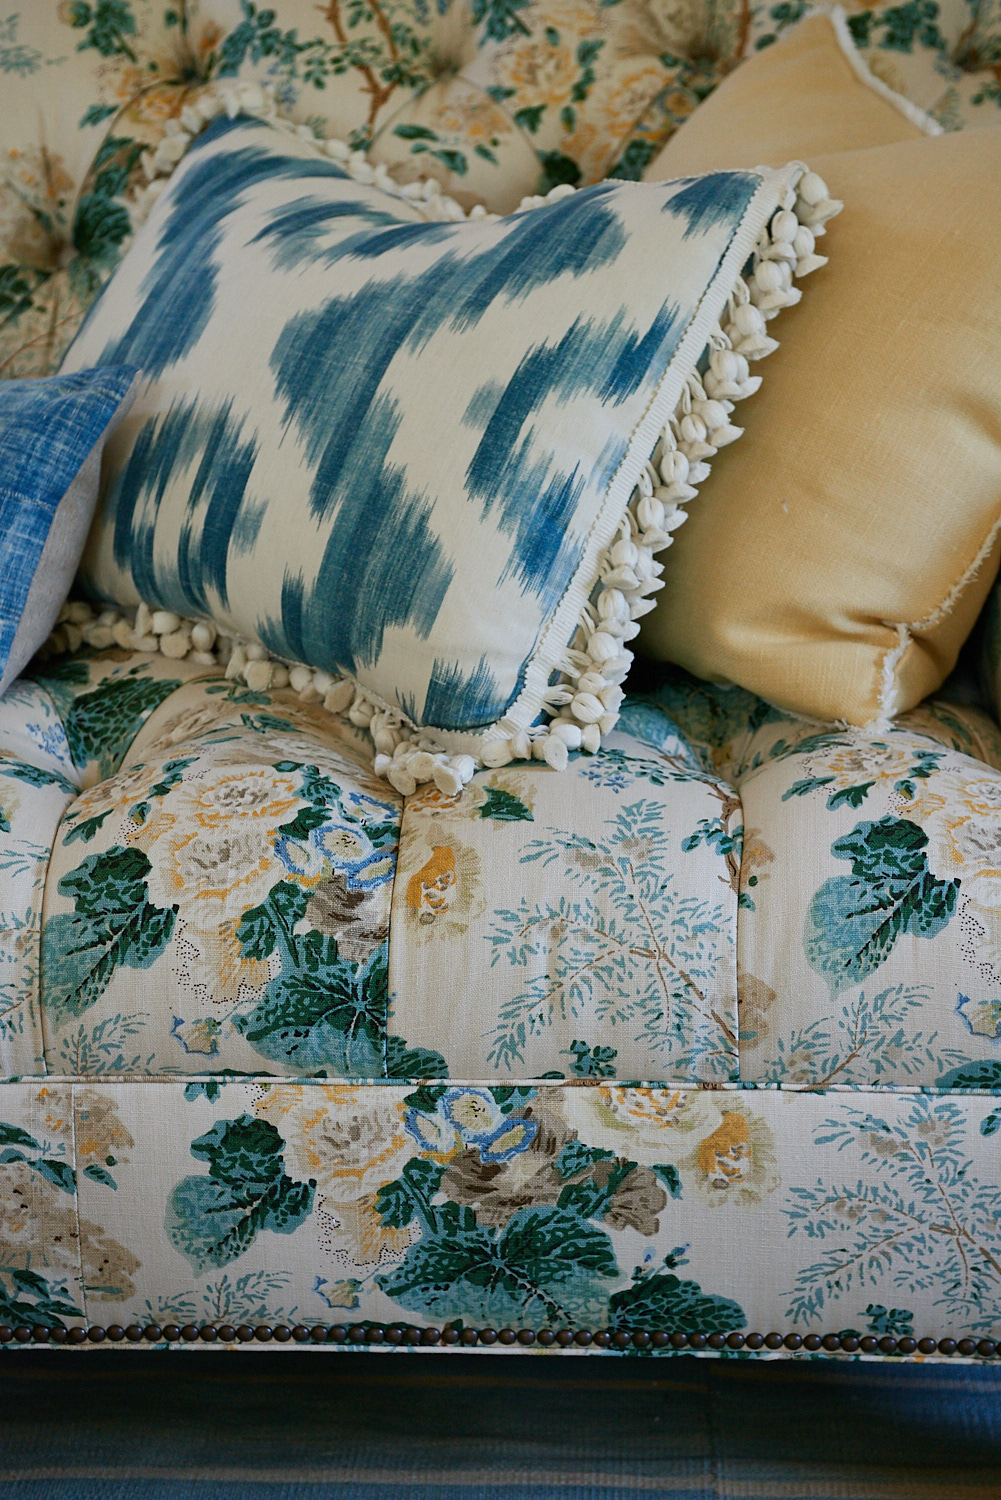 Detail of upholstered sofa with base rivets, and custom pillows with tassels